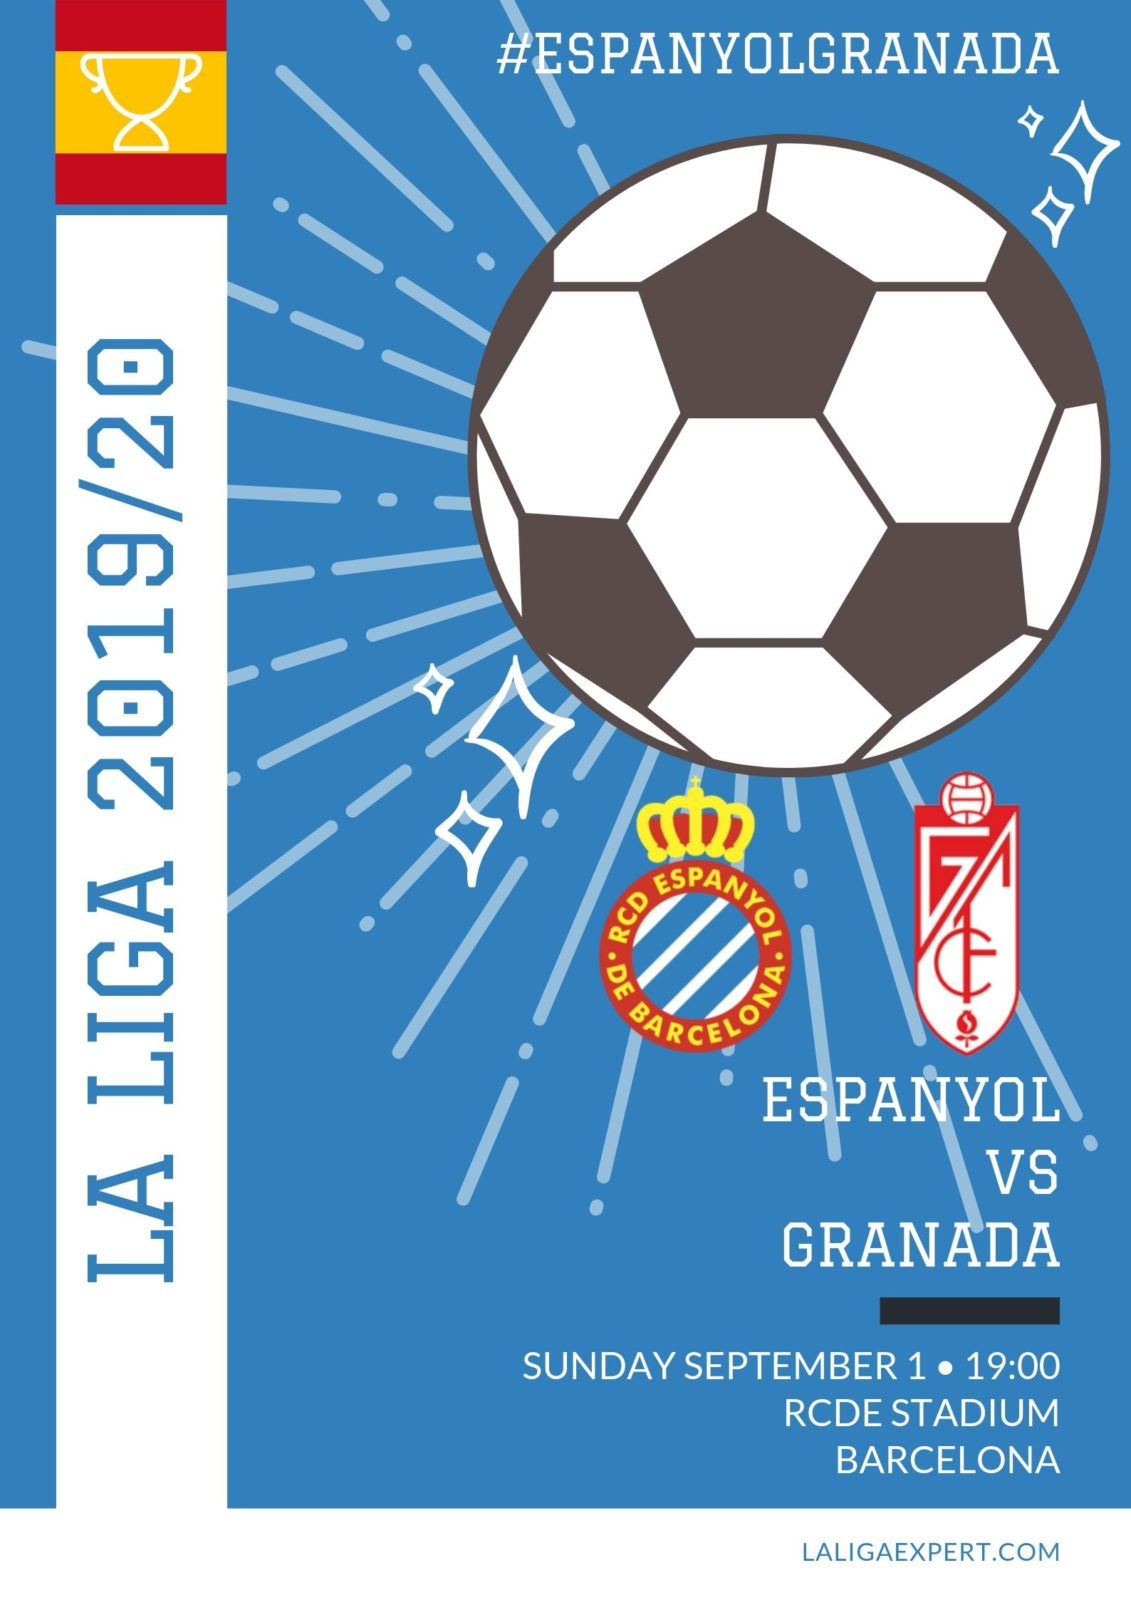 Espanyol vs Granada Match Preview & Prediction - La Liga Expert